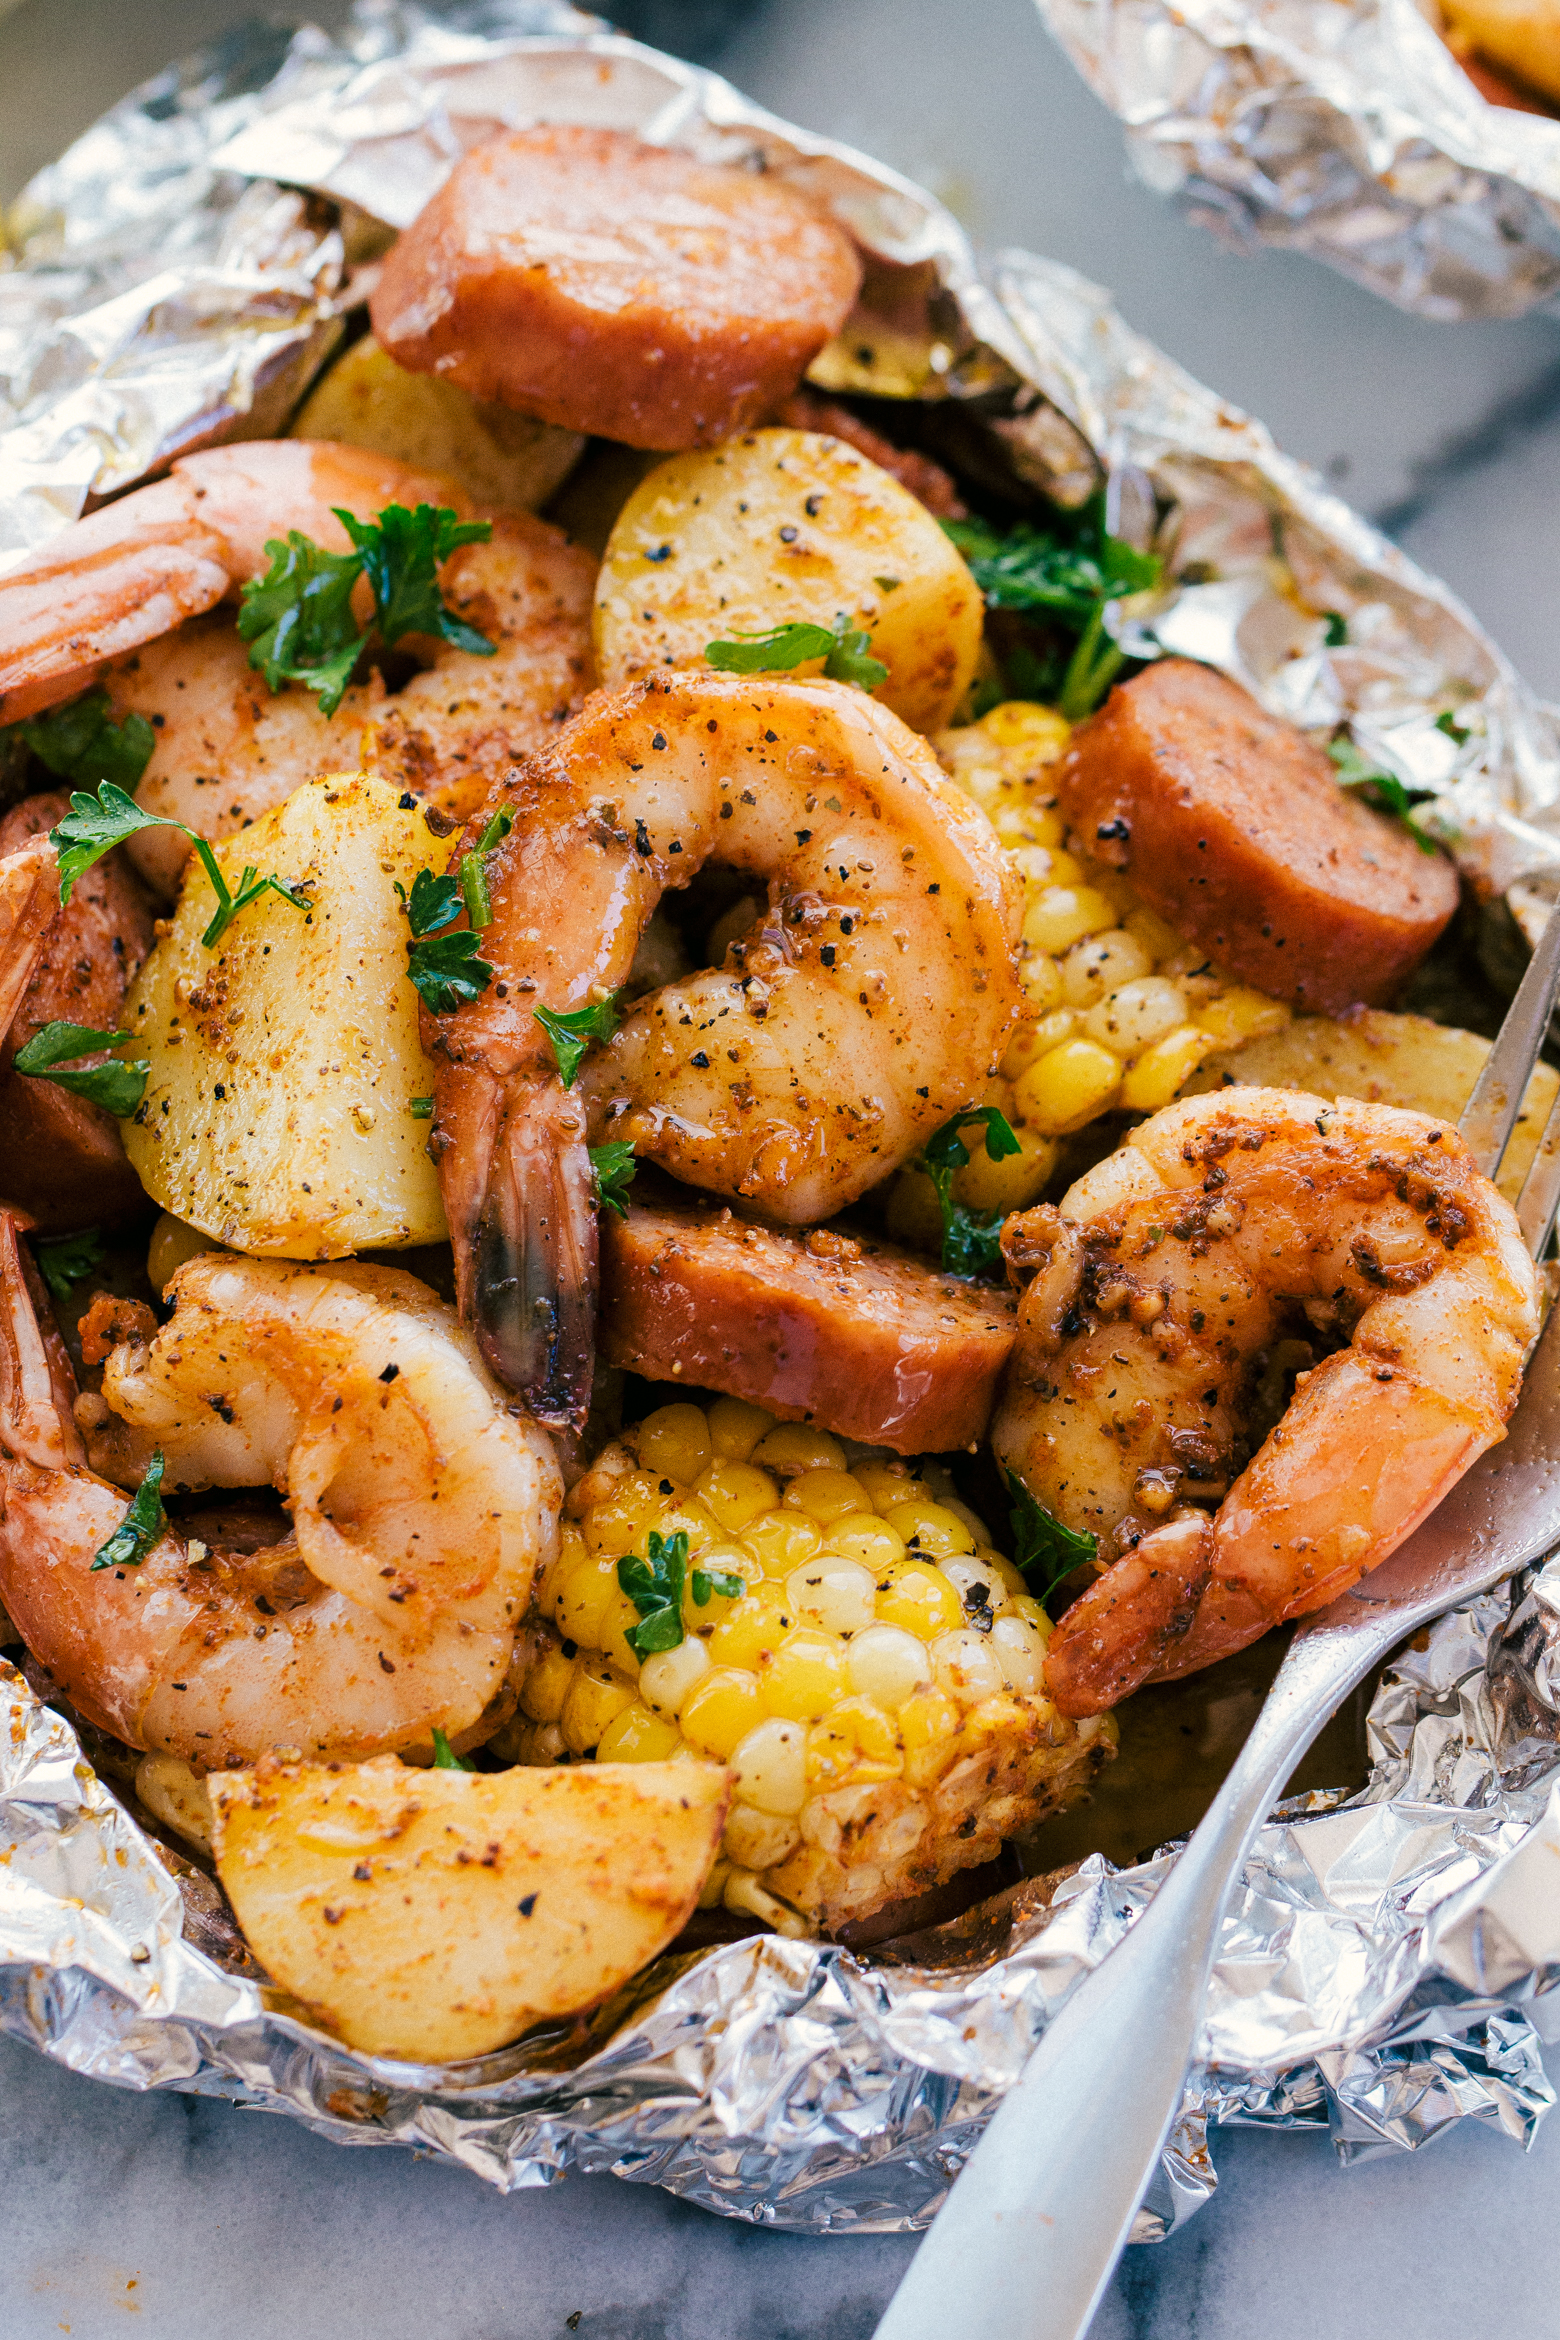 shrimp, corn, andouille sausage, and potatoes in foil with butter and parsley.